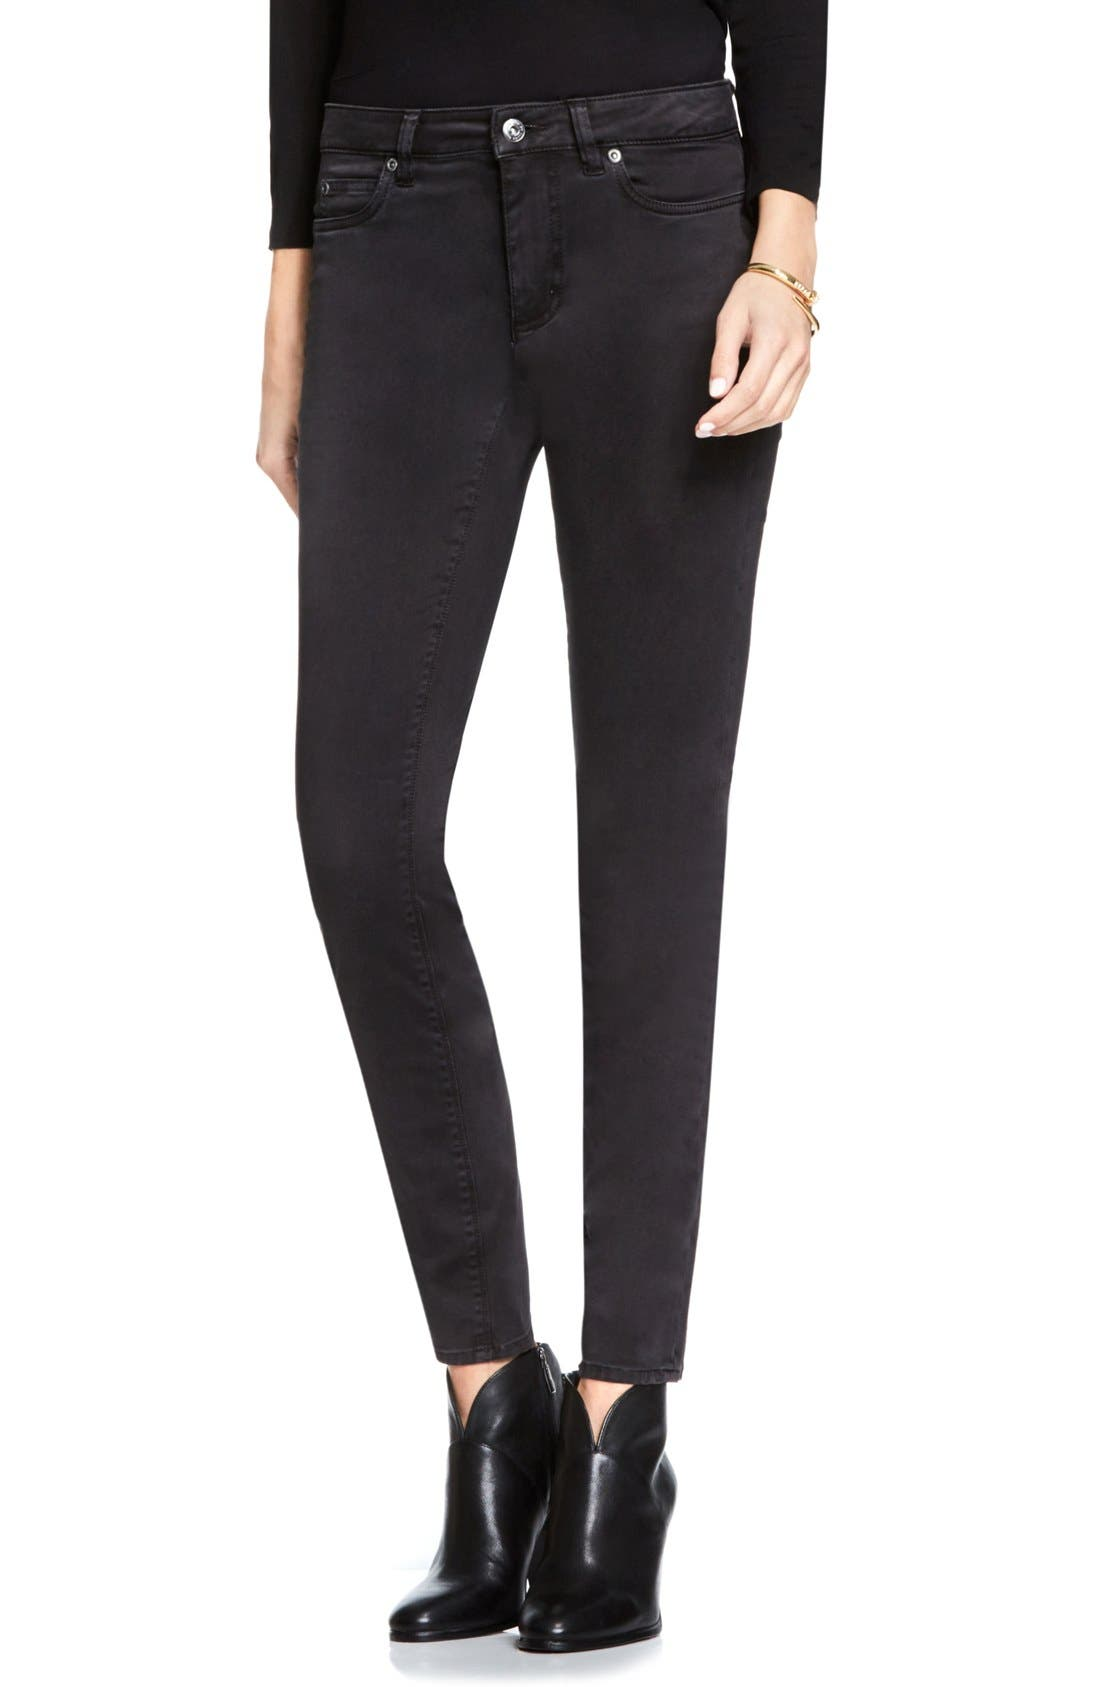 Main Image - Two by Vince Camuto Colored Five Pocket Skinny Jeans